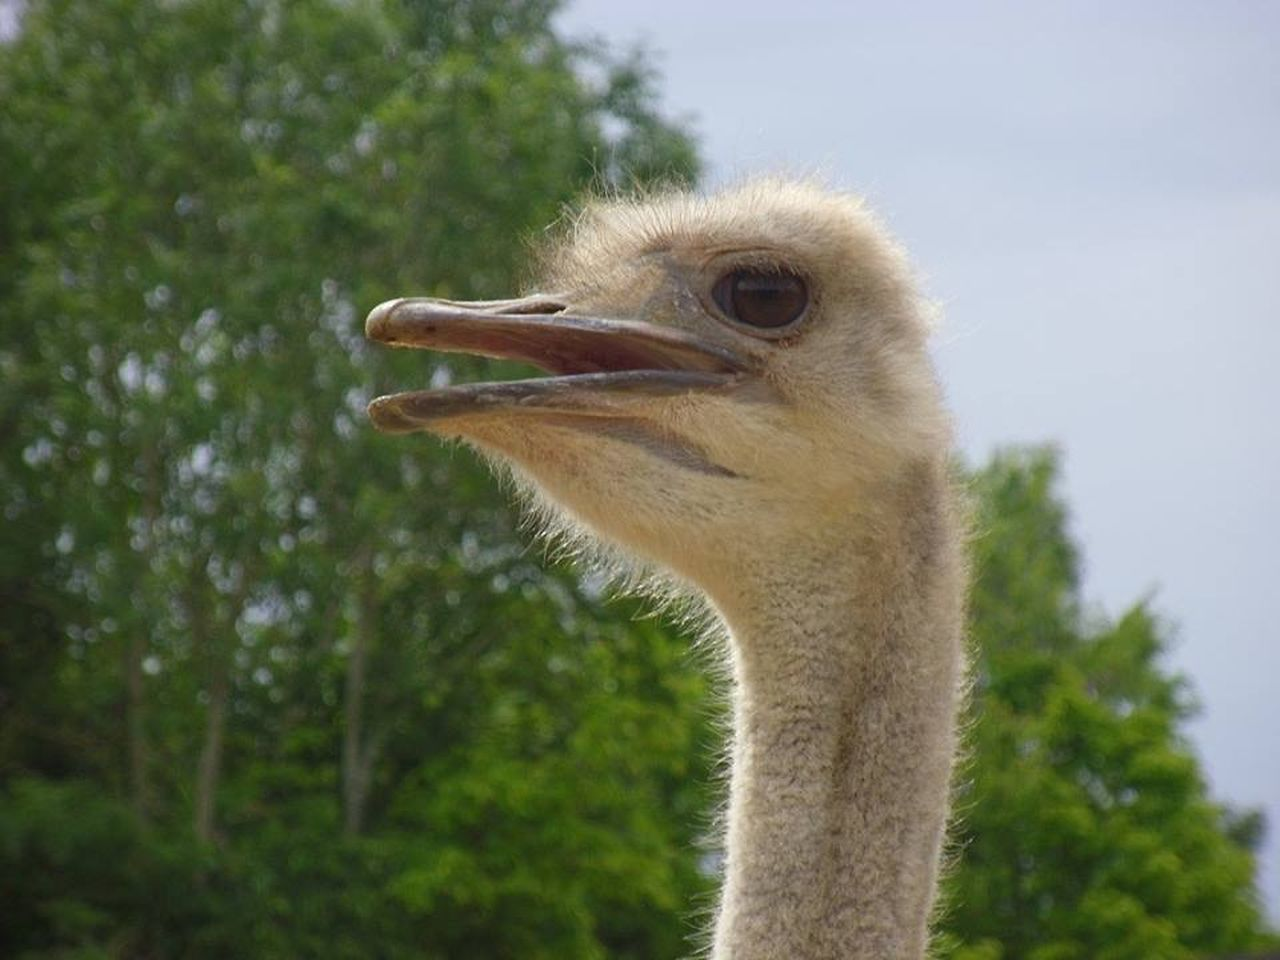 bird, animal themes, one animal, animals in the wild, ostrich, beak, day, animal wildlife, focus on foreground, close-up, no people, outdoors, nature